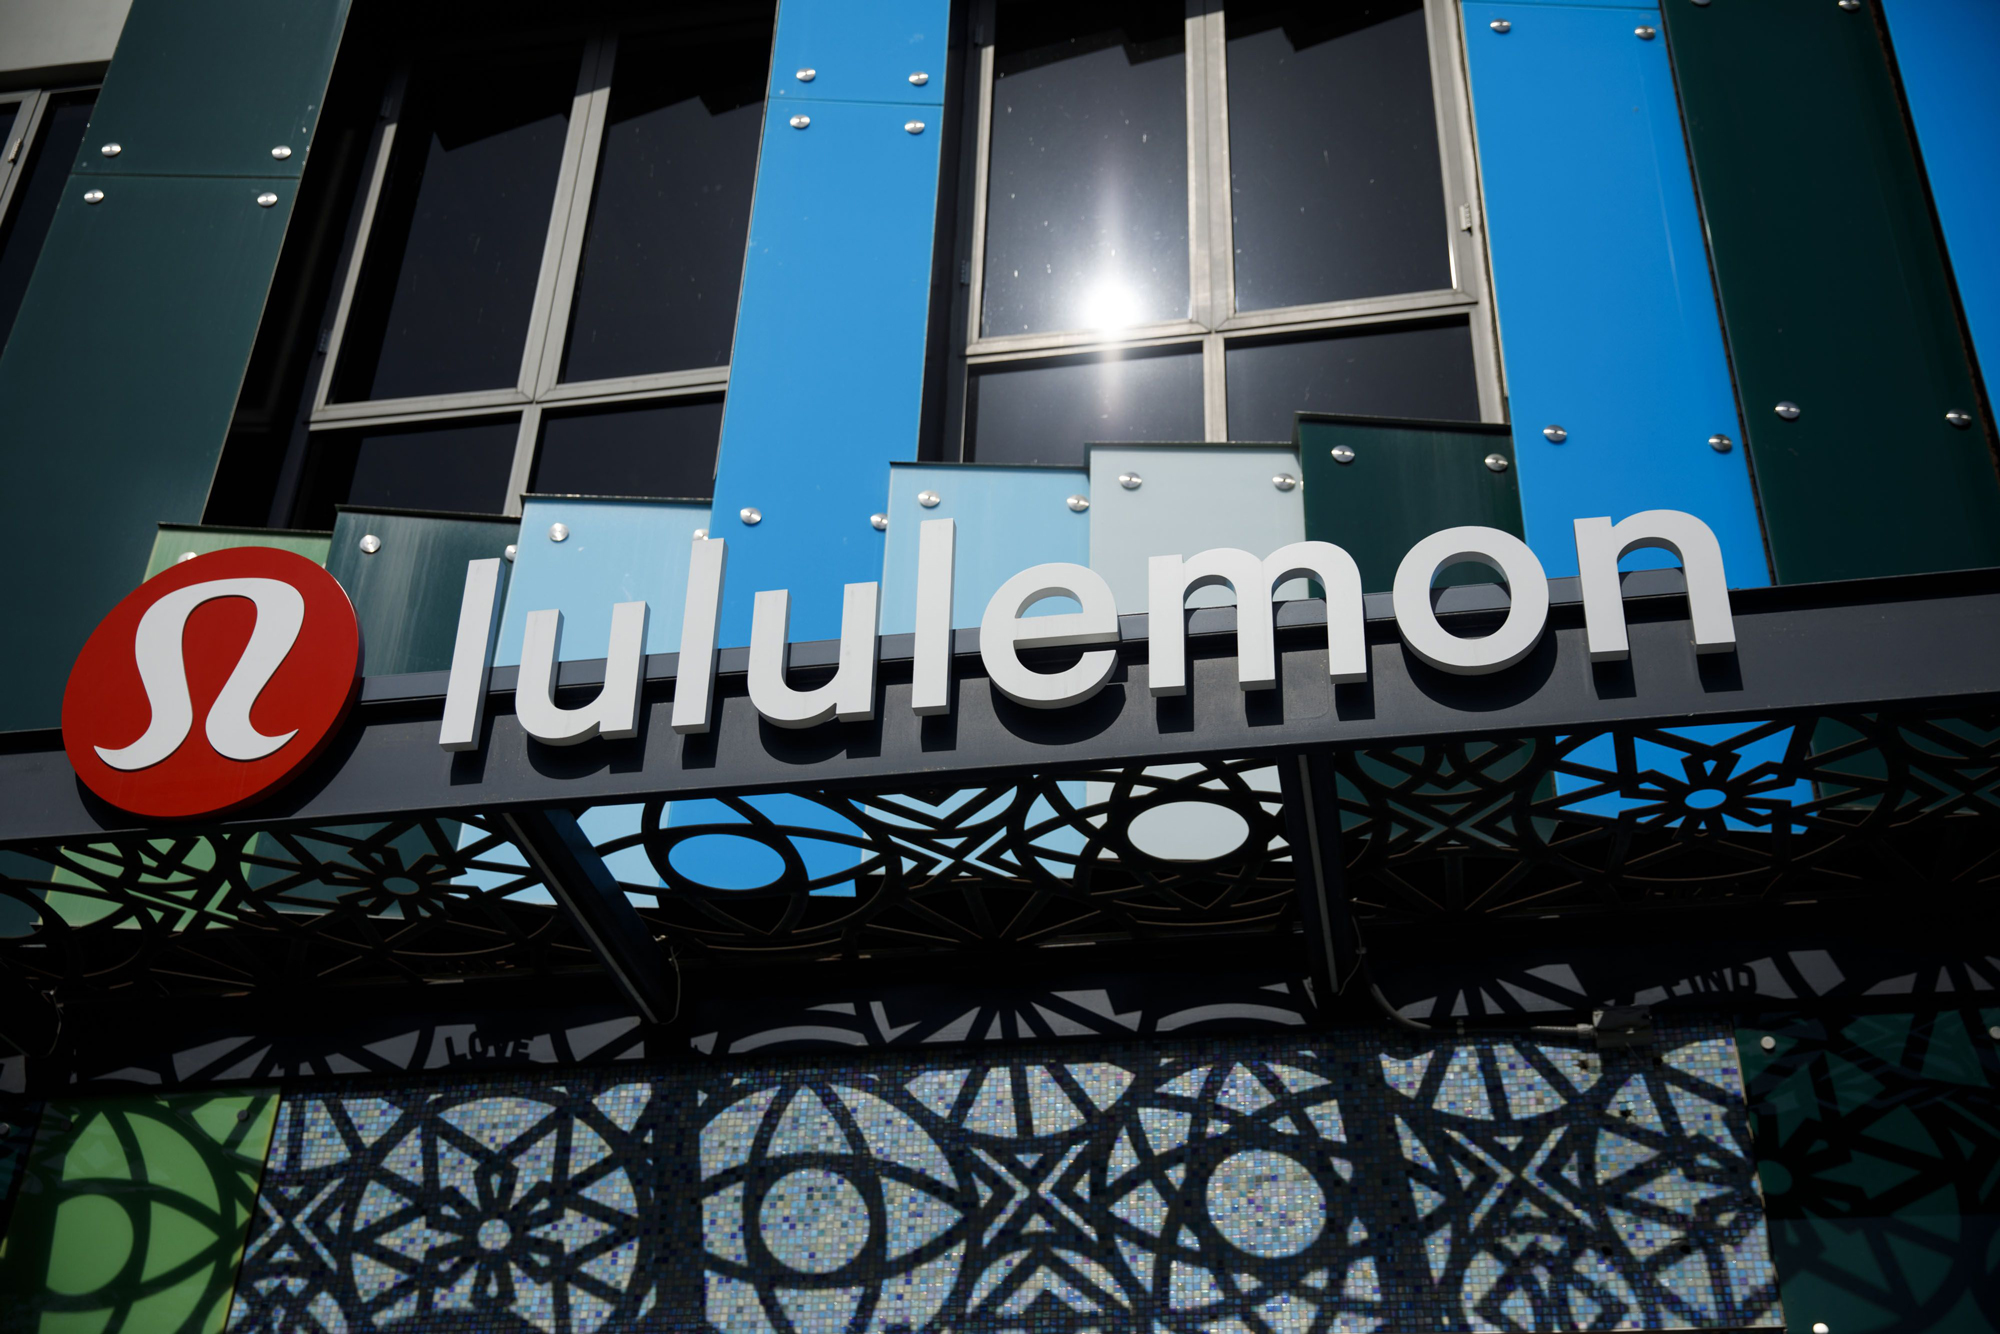 The Week Ahead: Lululemon reports earnings, March jobs report arrives and brands navigate April Fools' Day